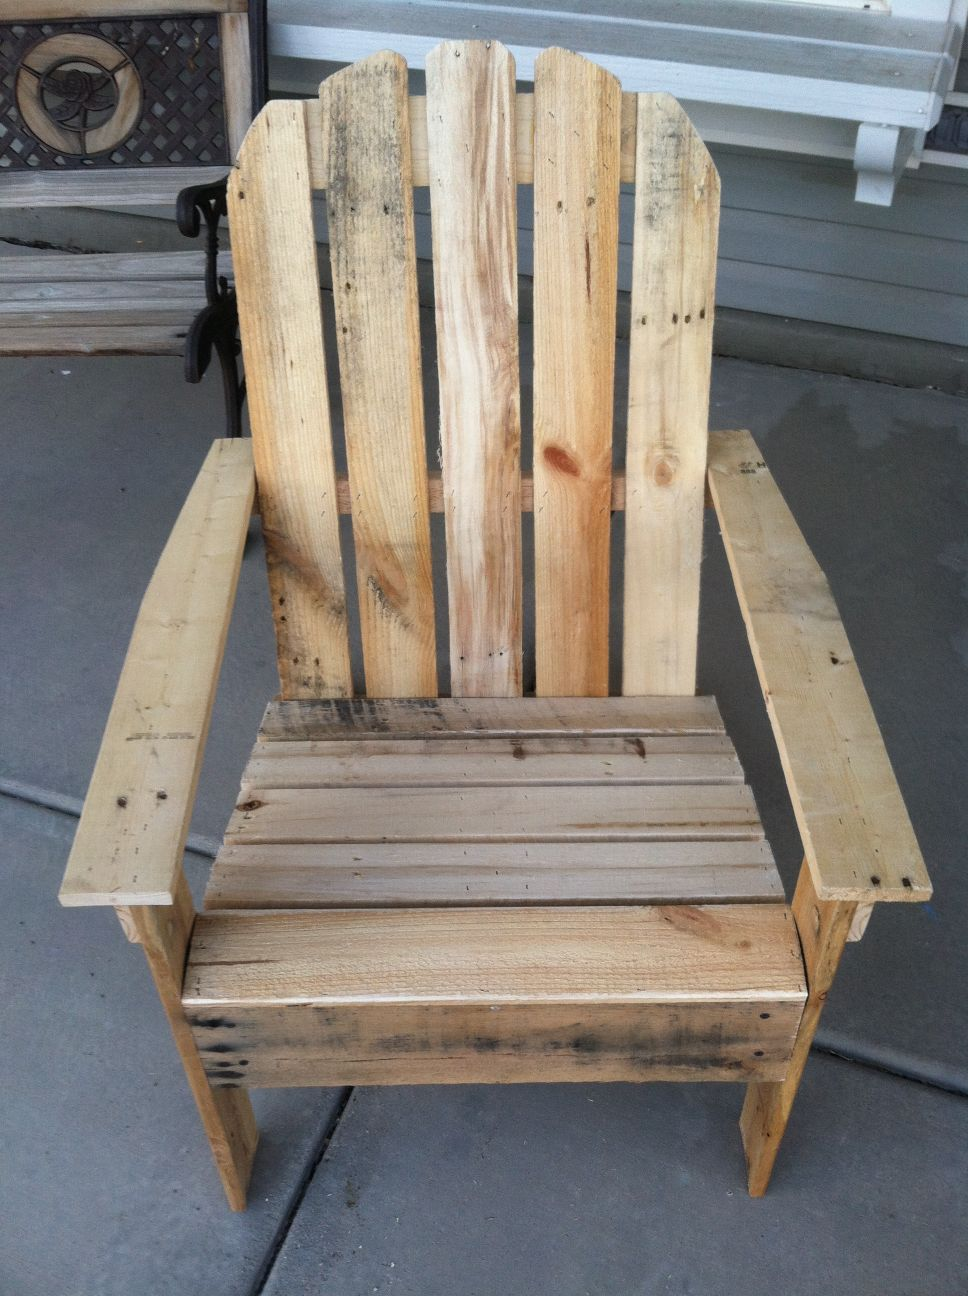 Pallet bookshelf and pallet outdoor chairdiy pallet furniture diy pallet furniture Homemade wooden furniture